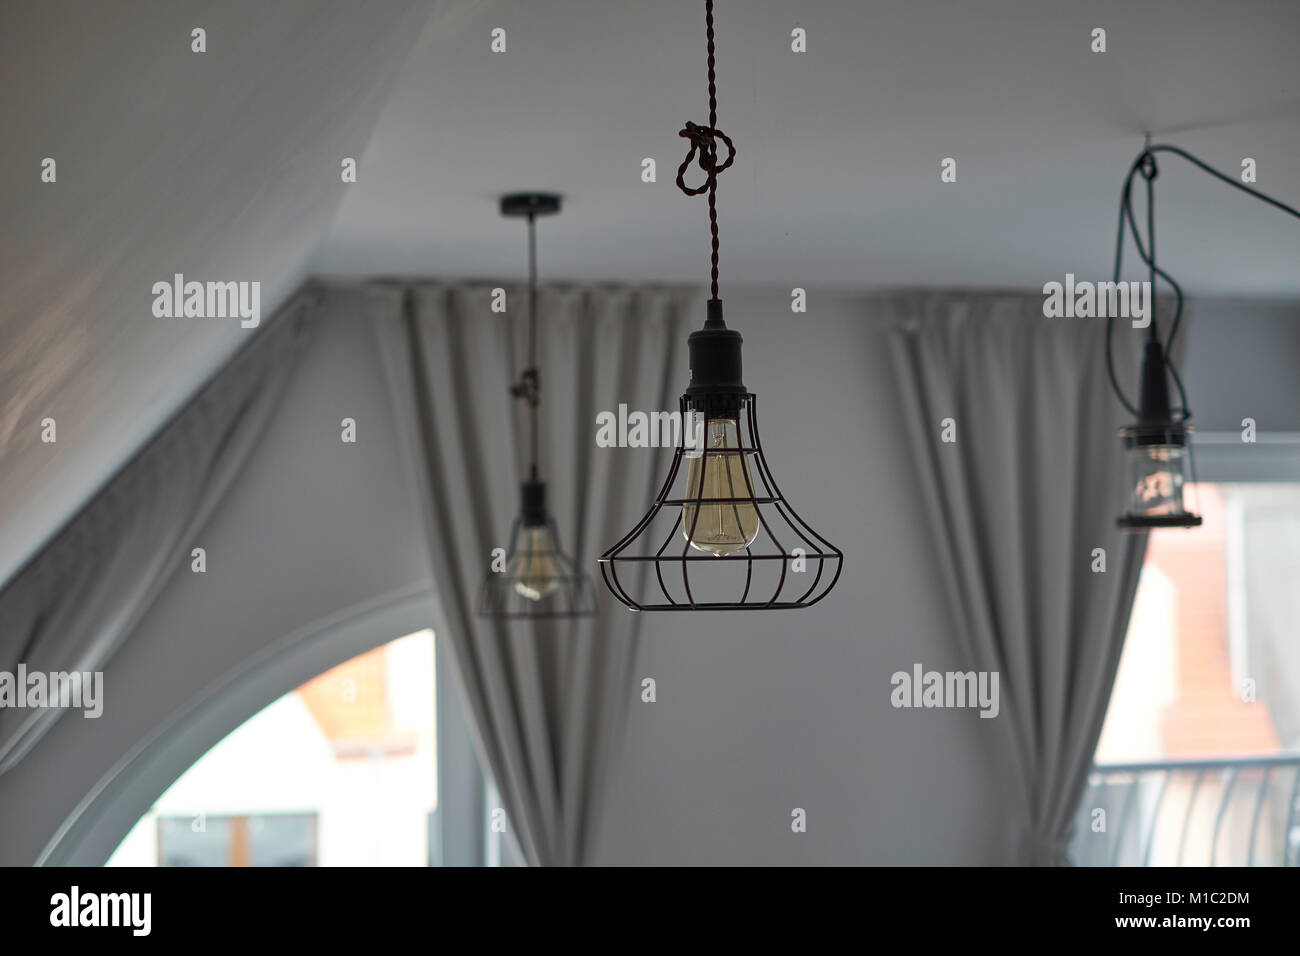 Industrial wire pendant lamps in loft living room Stock Photo ...